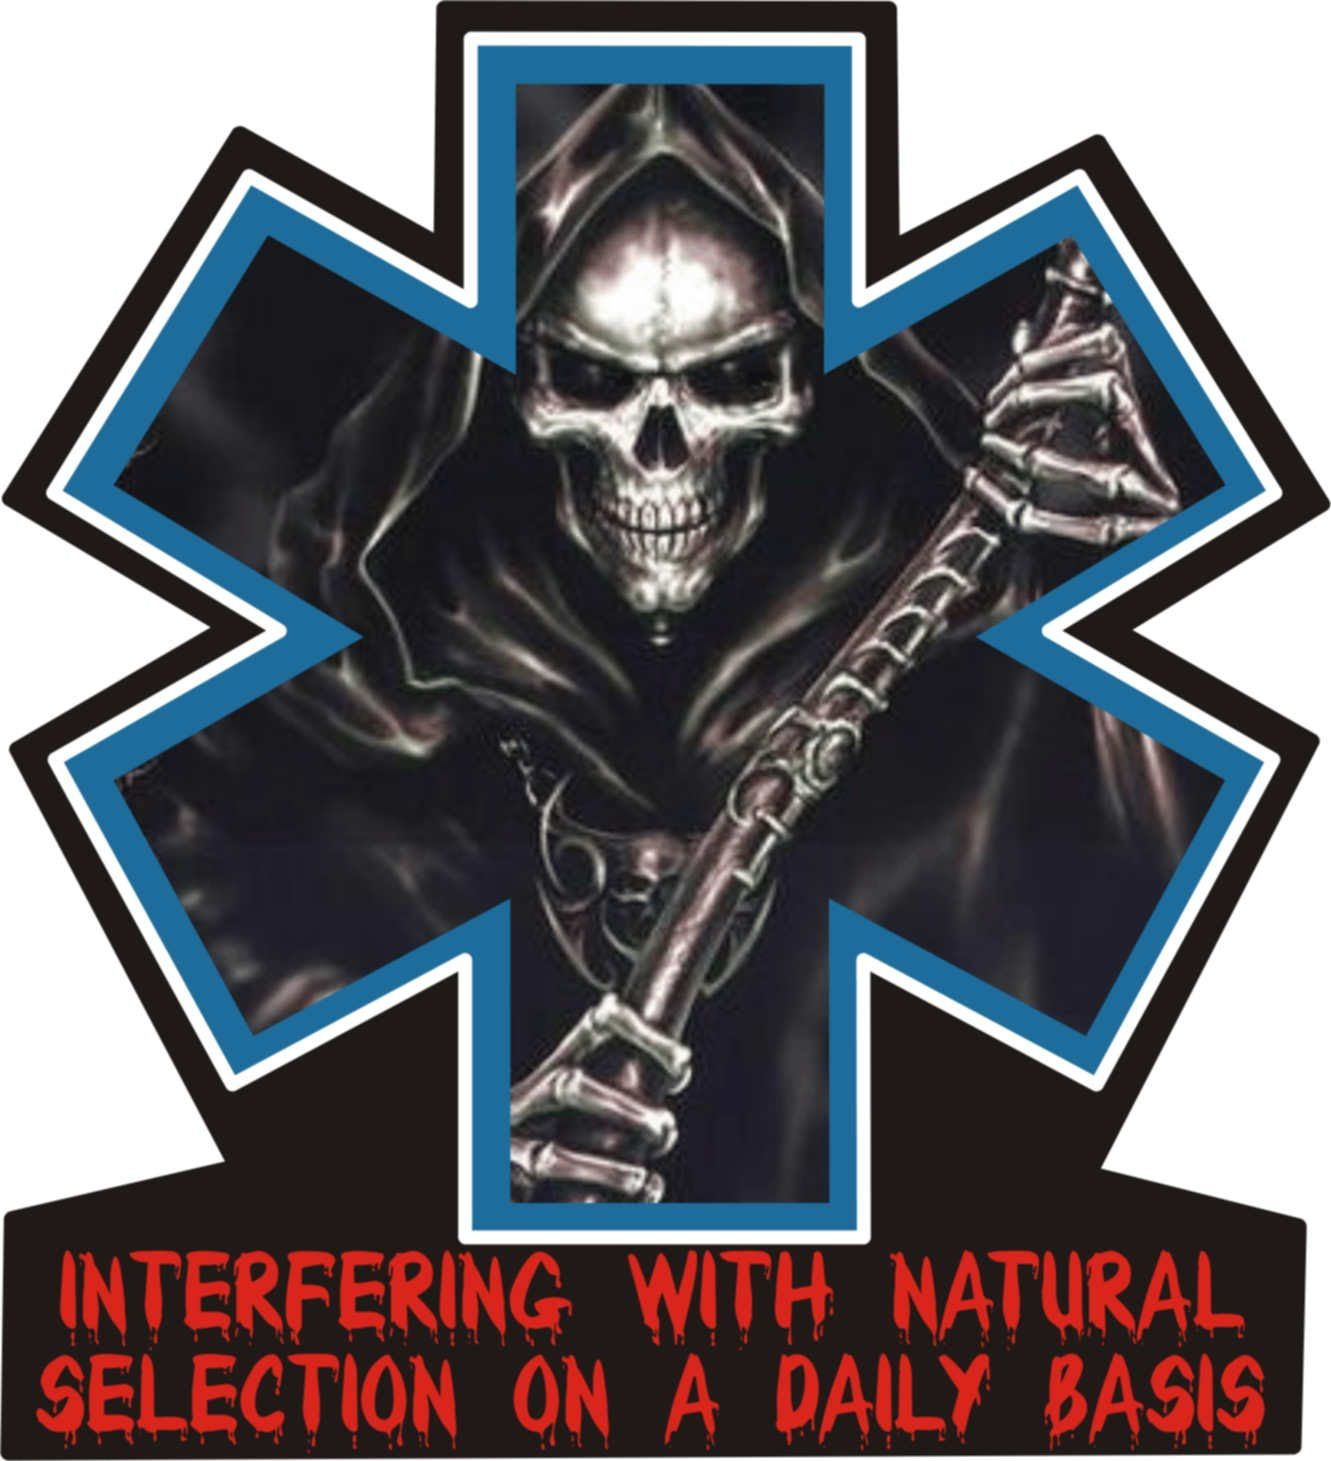 Emt tattoos interfering ems reaper fire and rescue tattoo emt tattoos interfering ems reaper biocorpaavc Gallery